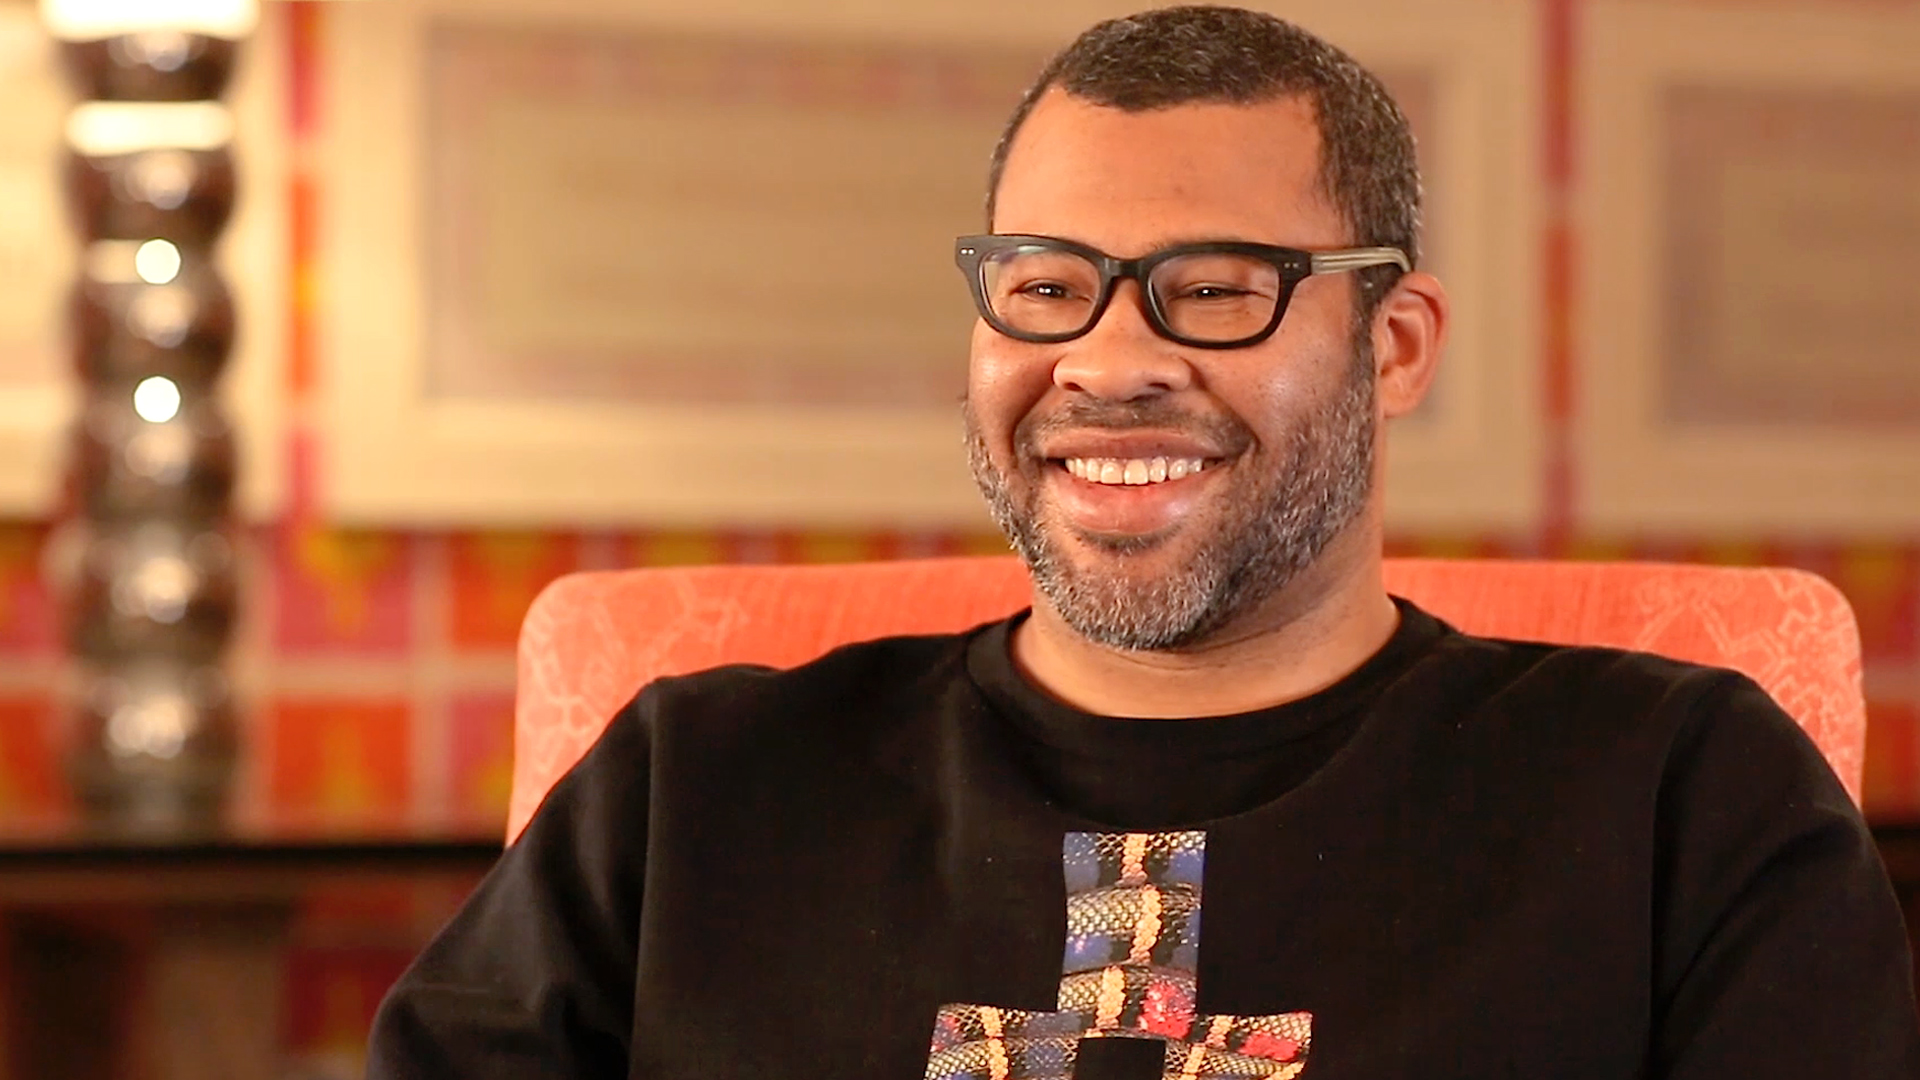 Jordan Peele, writer/director of Get Out. He previously partnered with Keegan-Michael Key on the acclaimed Comedy Central TV show Key and Peele.